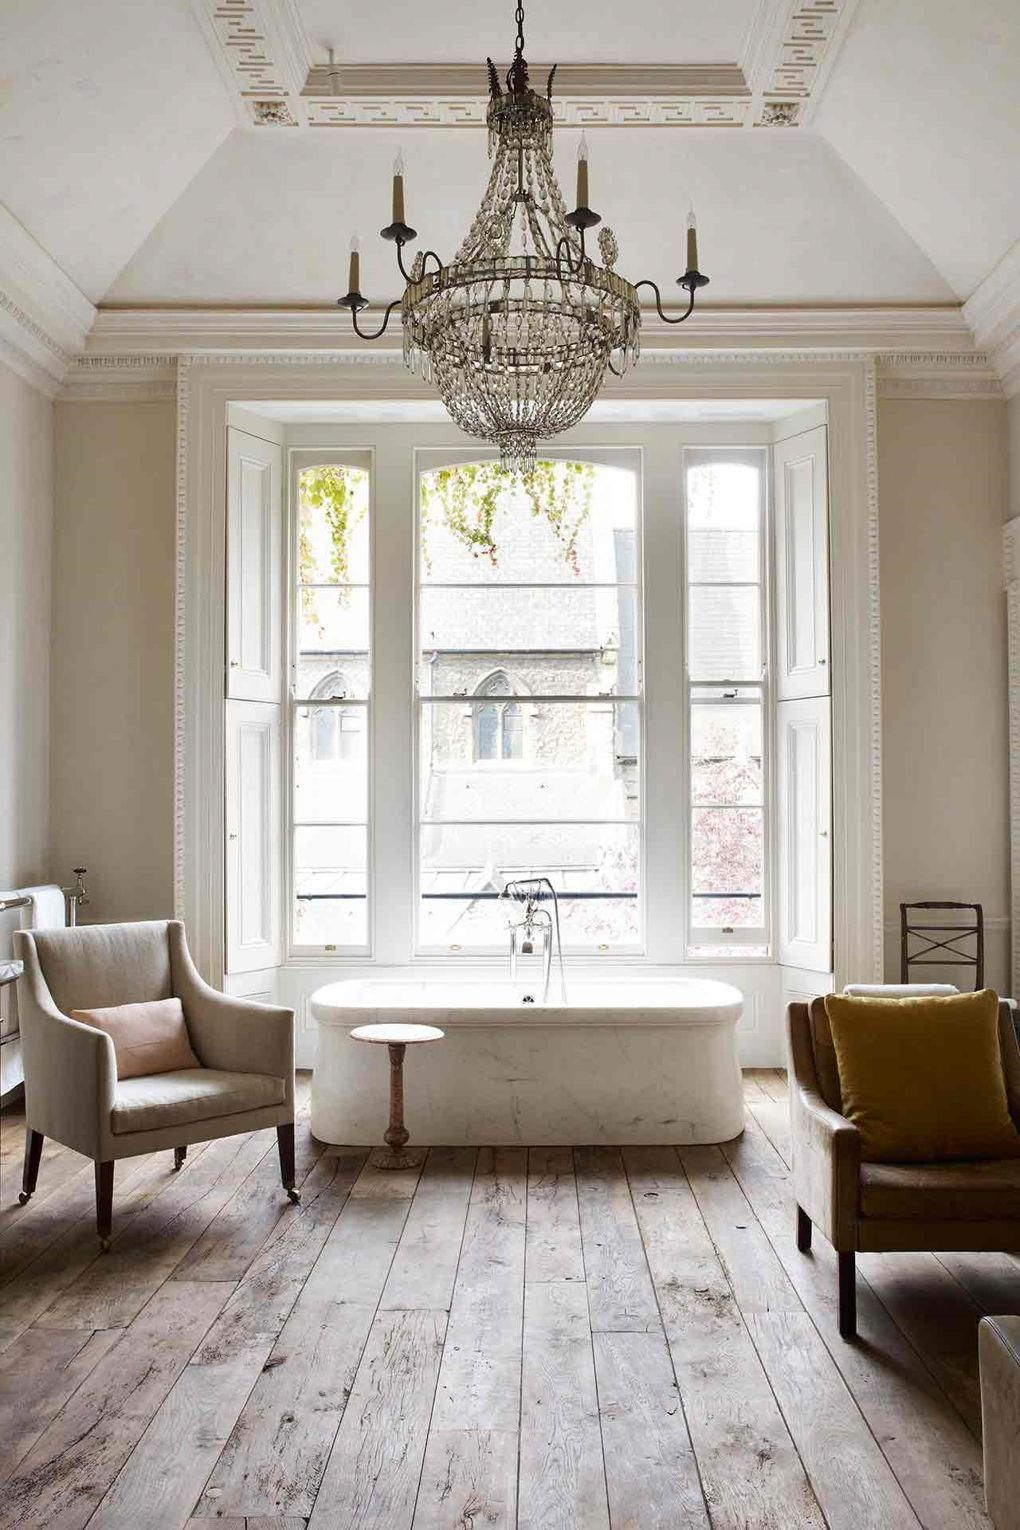 Fantastic Home Decor Ideas Info Are Offered On Our Web Pages Check It Out And You Will Not Be Sorry You Did Home In 2020 Bauernhaus Wohnzimmer Haus Deko Coole Raume